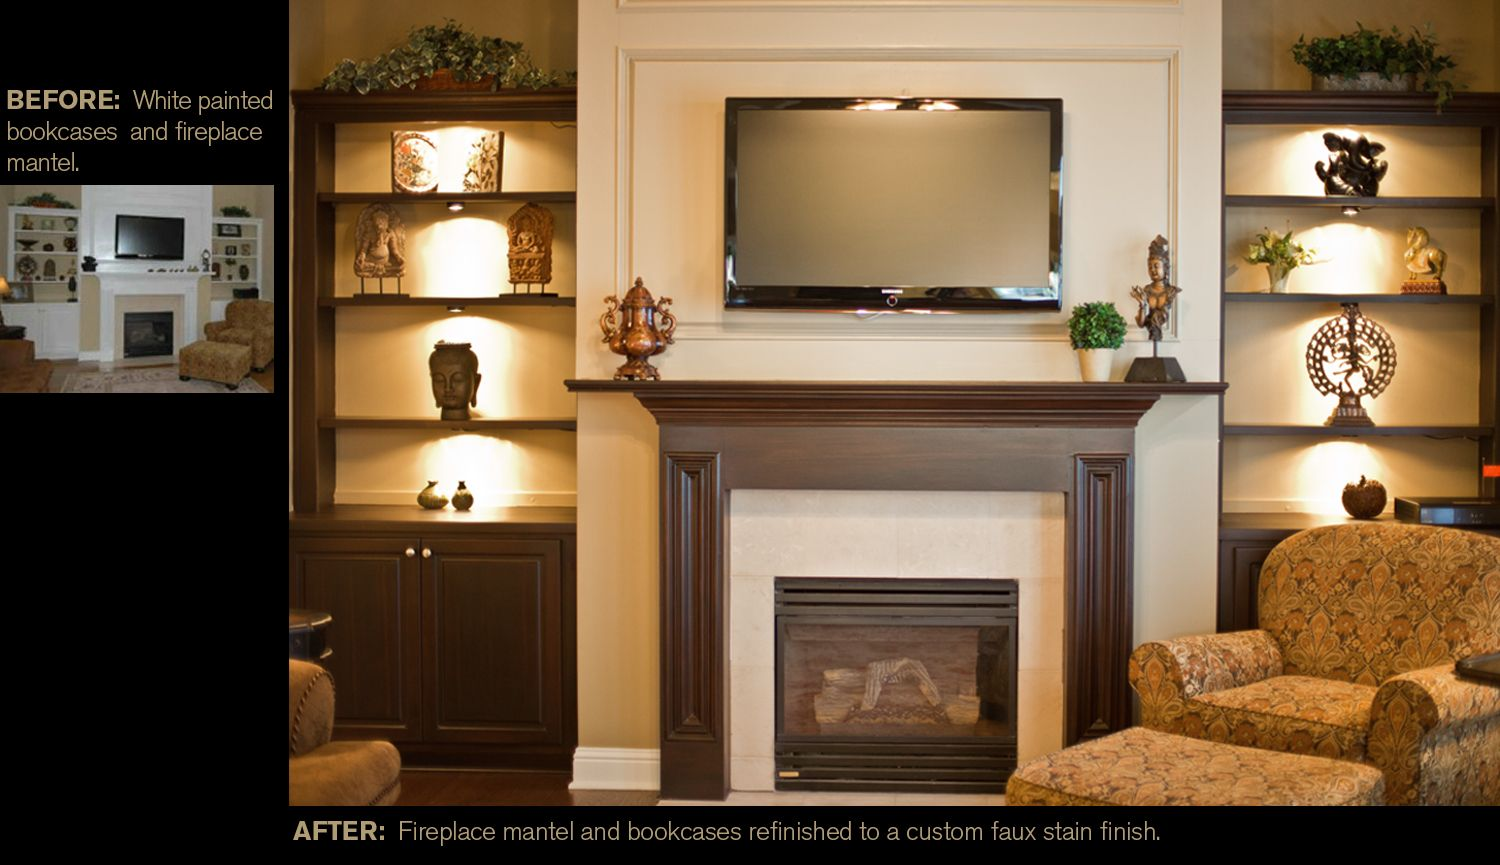 From white painted fireplace mantel and bookcases to a custom faux